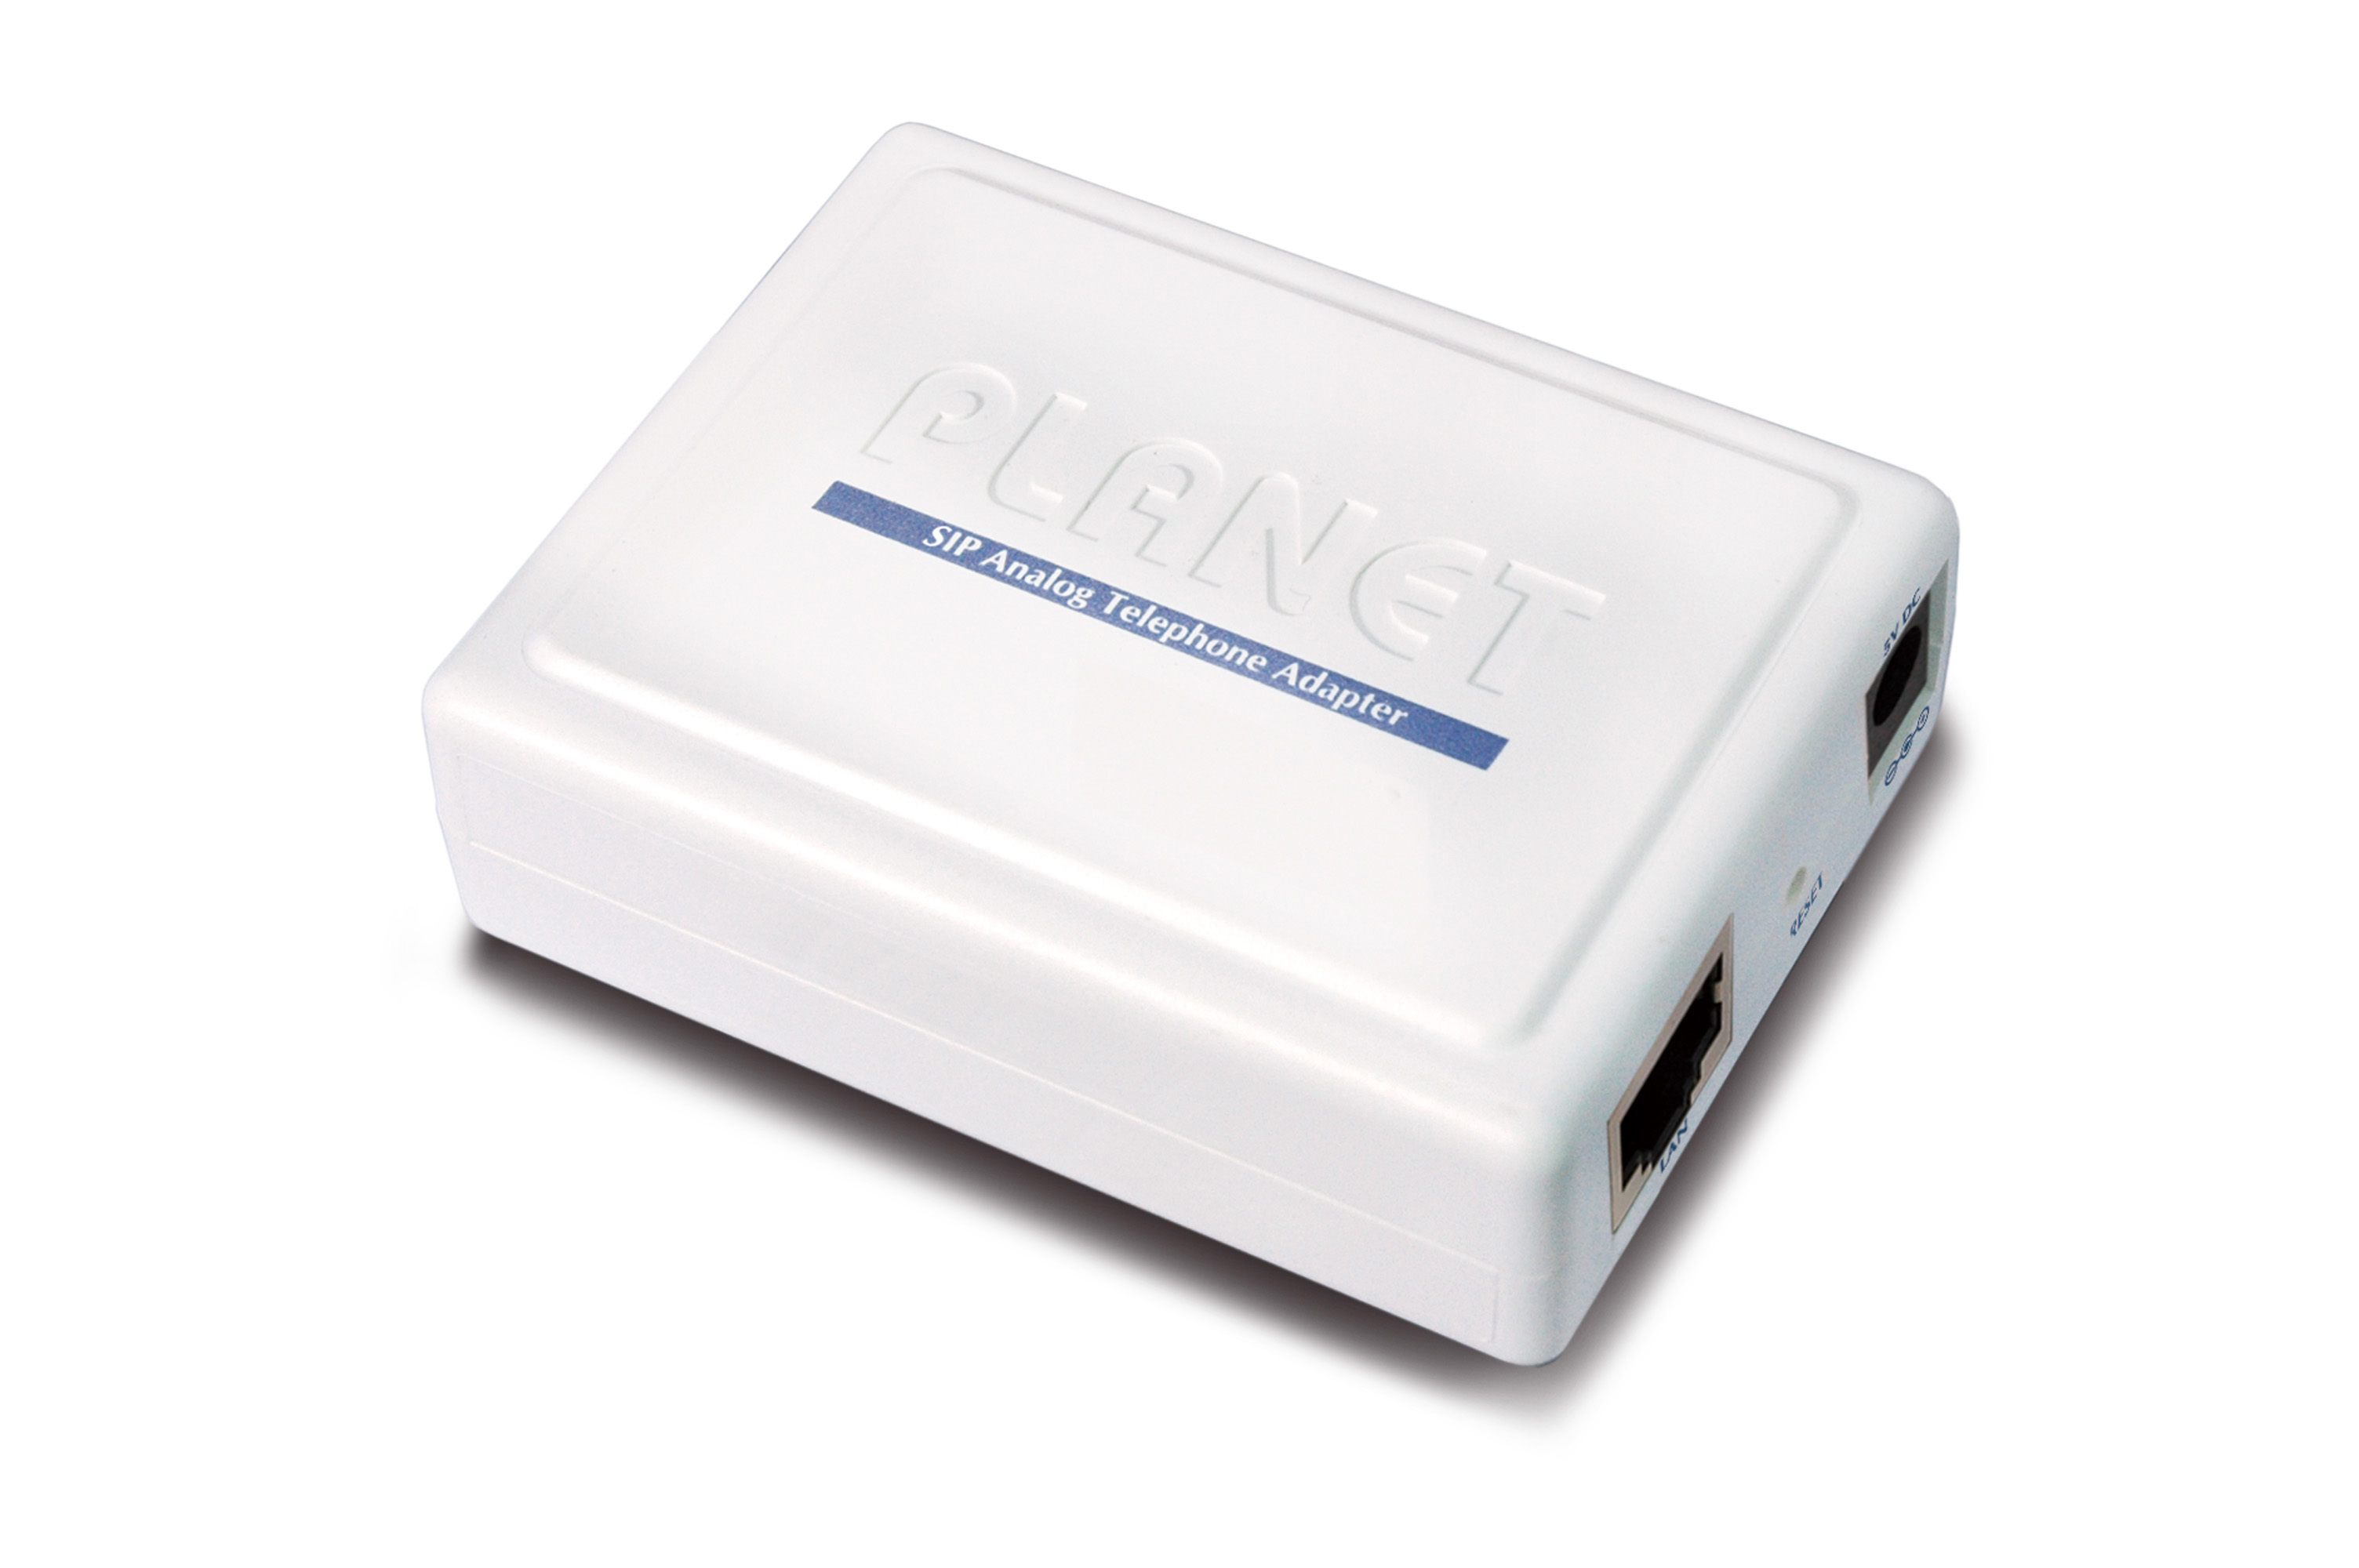 Planet Technology VIP-158 VoIP adapter for analog phone